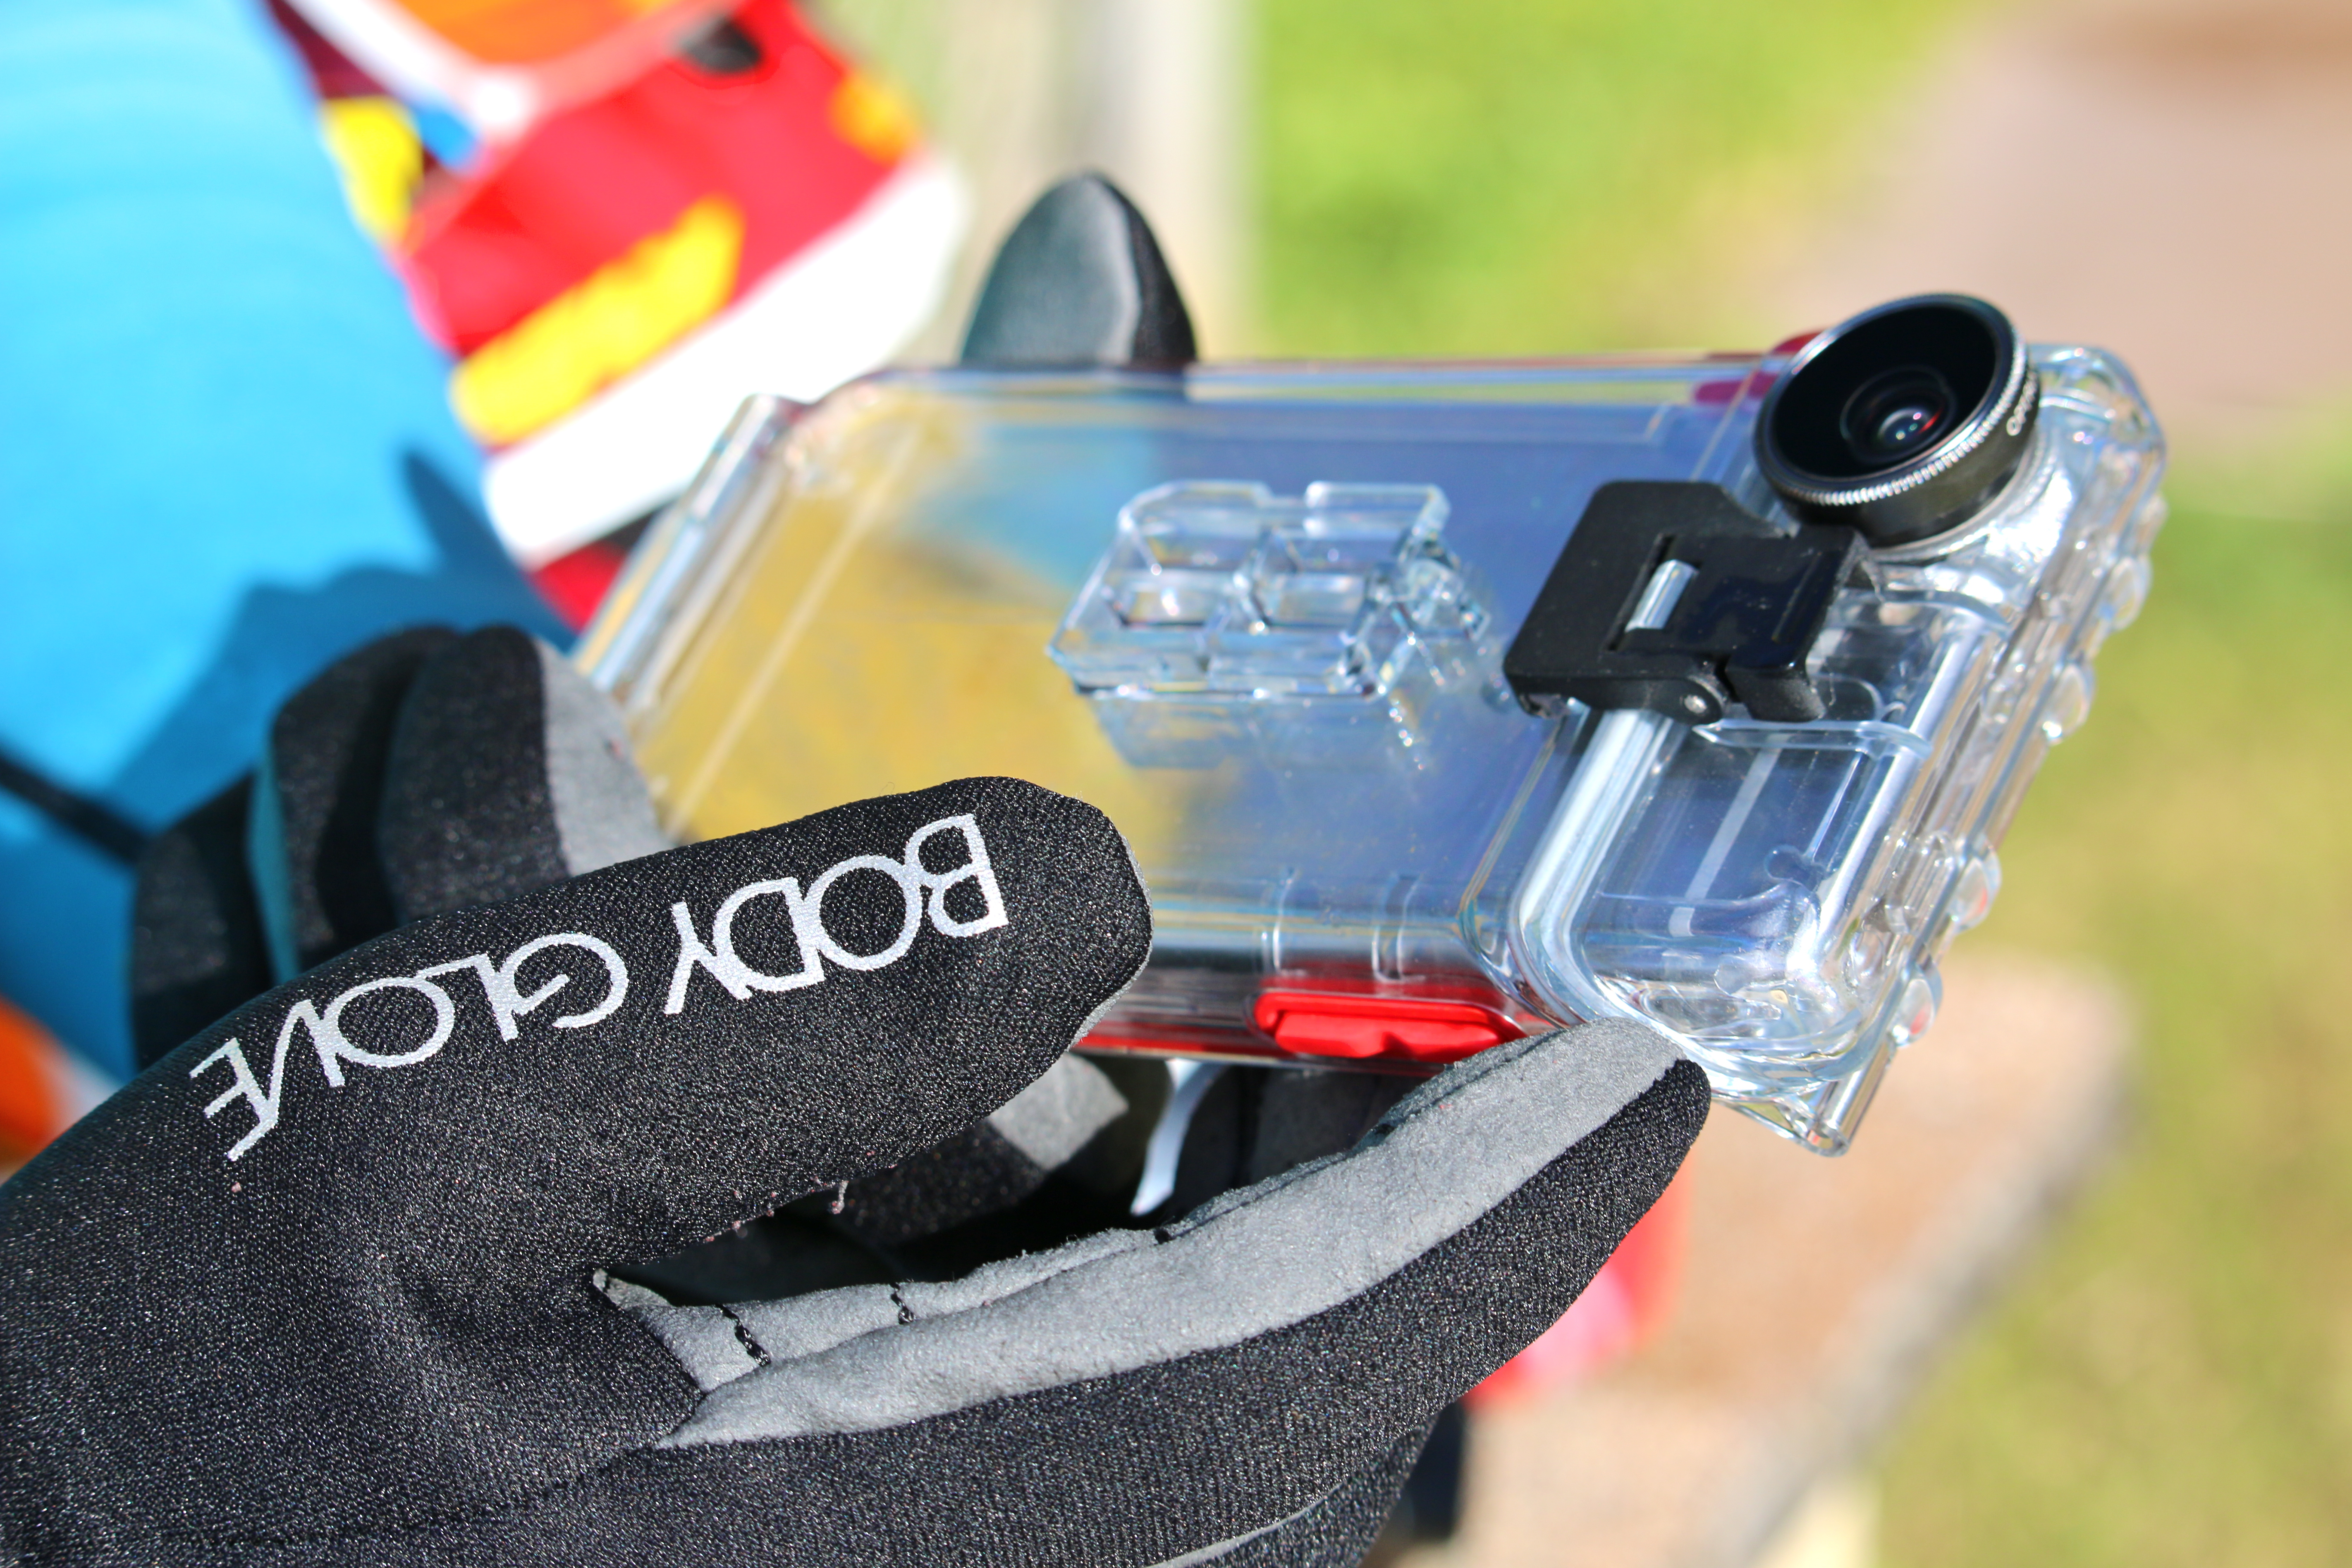 competitive price ab3f0 5fe23 Optrix Review: Underwater Phone Case | SmarterTravel